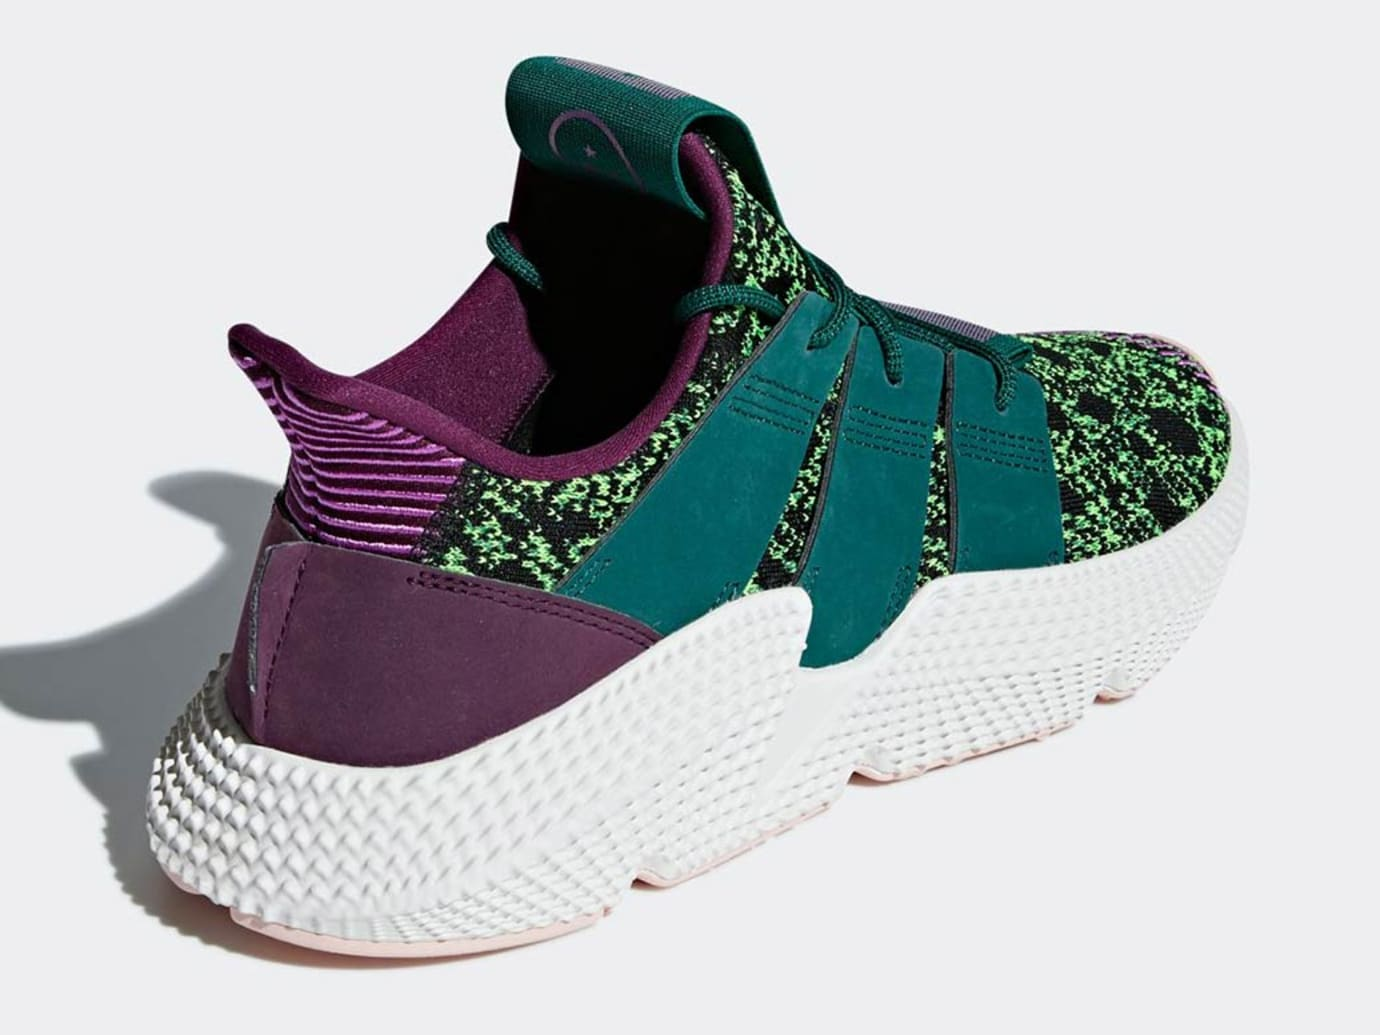 new products 455dc 45937 Image via Adidas Dragon Ball Z x Adidas Prophere Cell Release Date D97053  Back